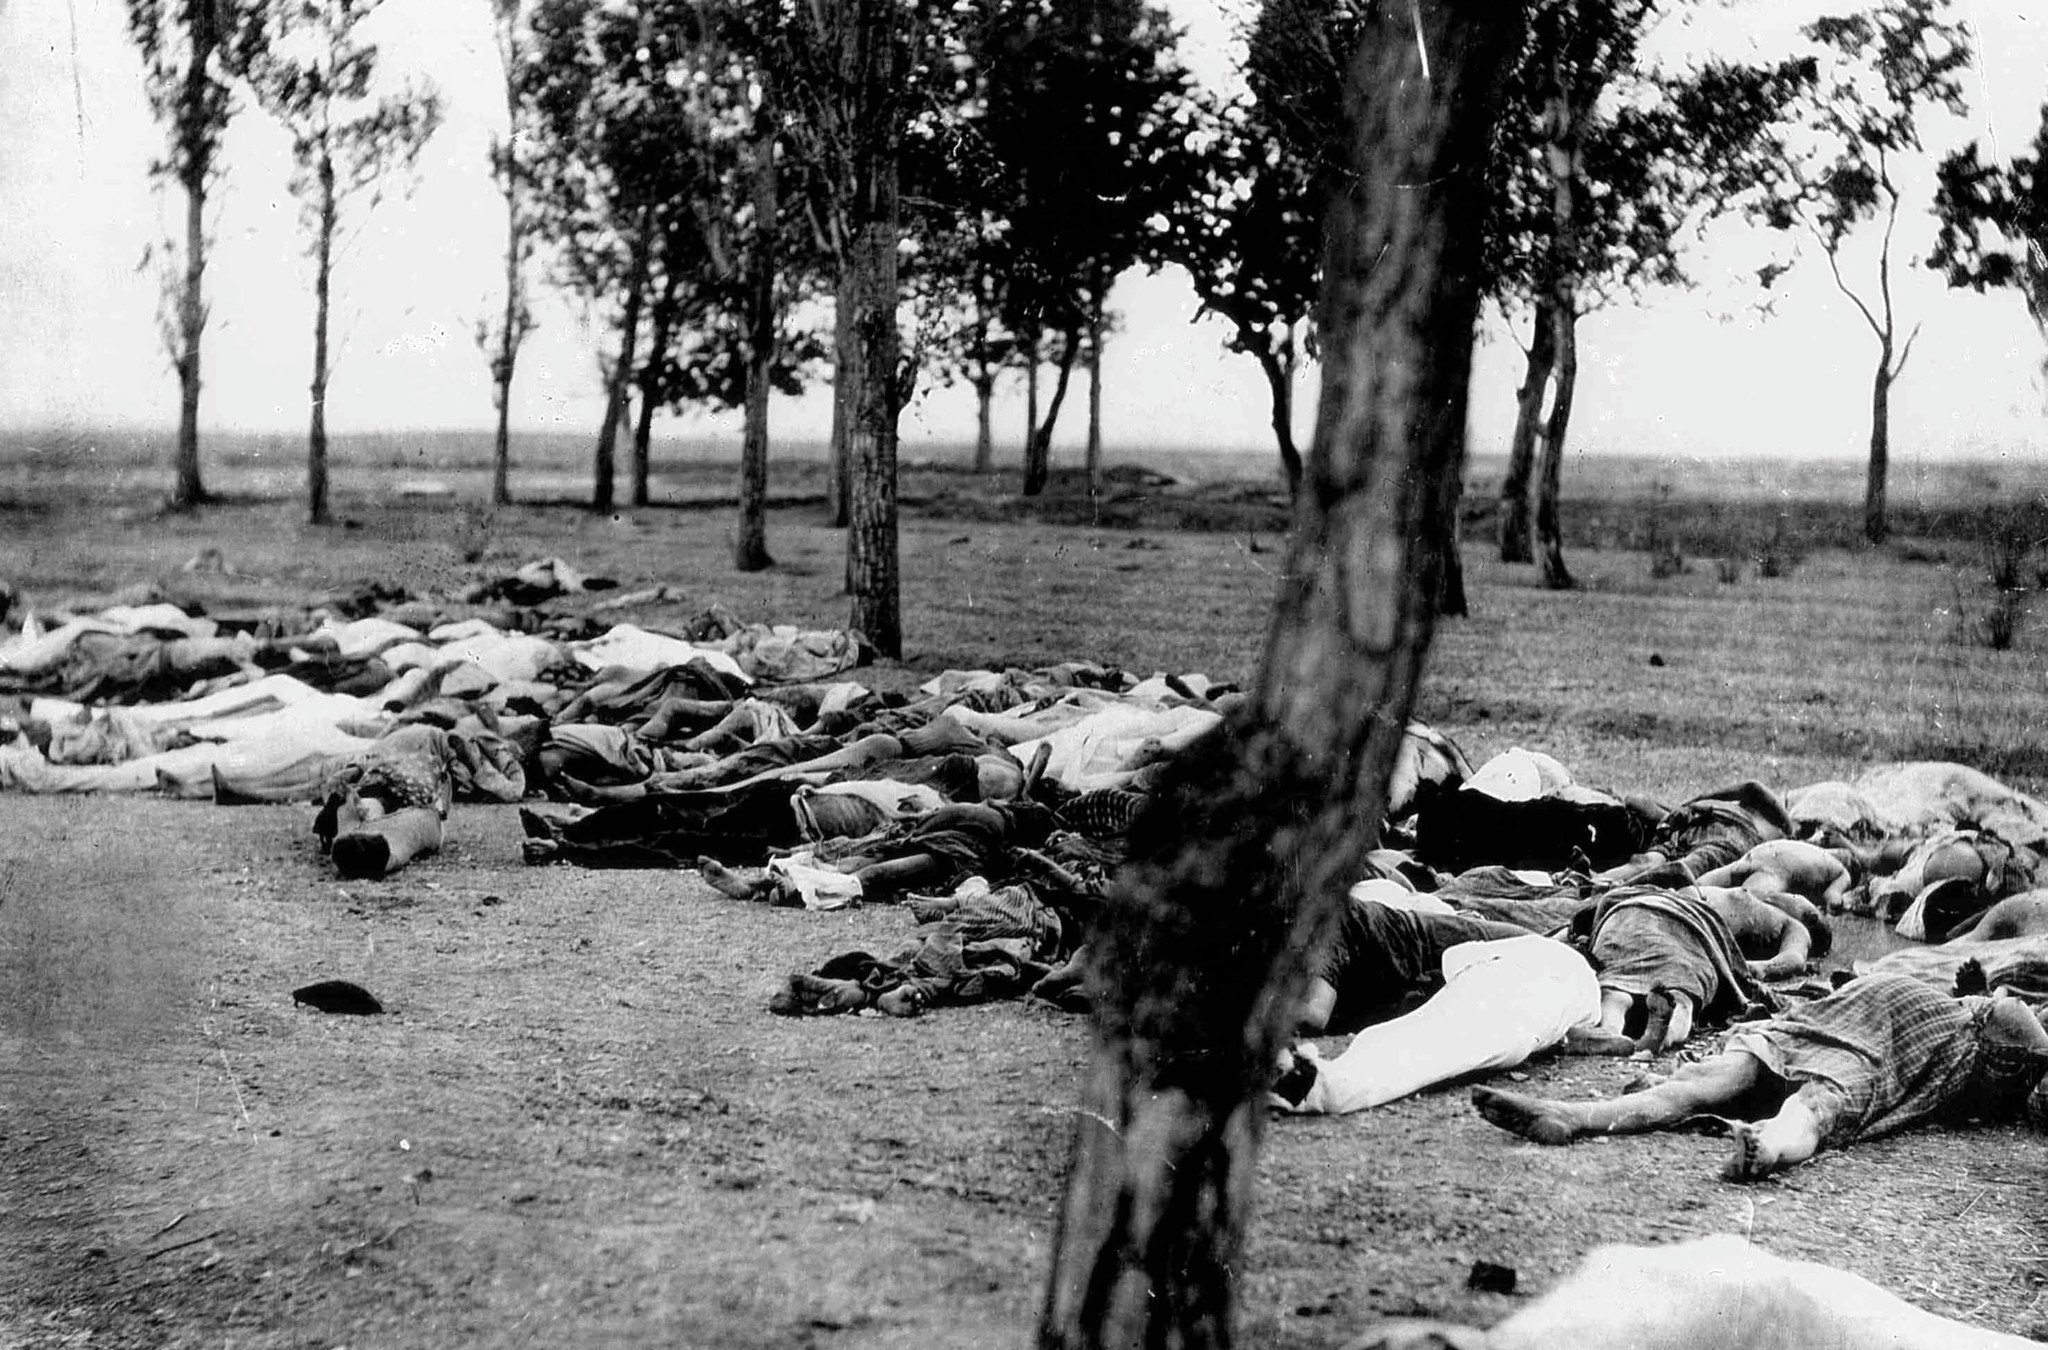 It was a genocide: Tell the truth about Ottoman crimes against Armenians